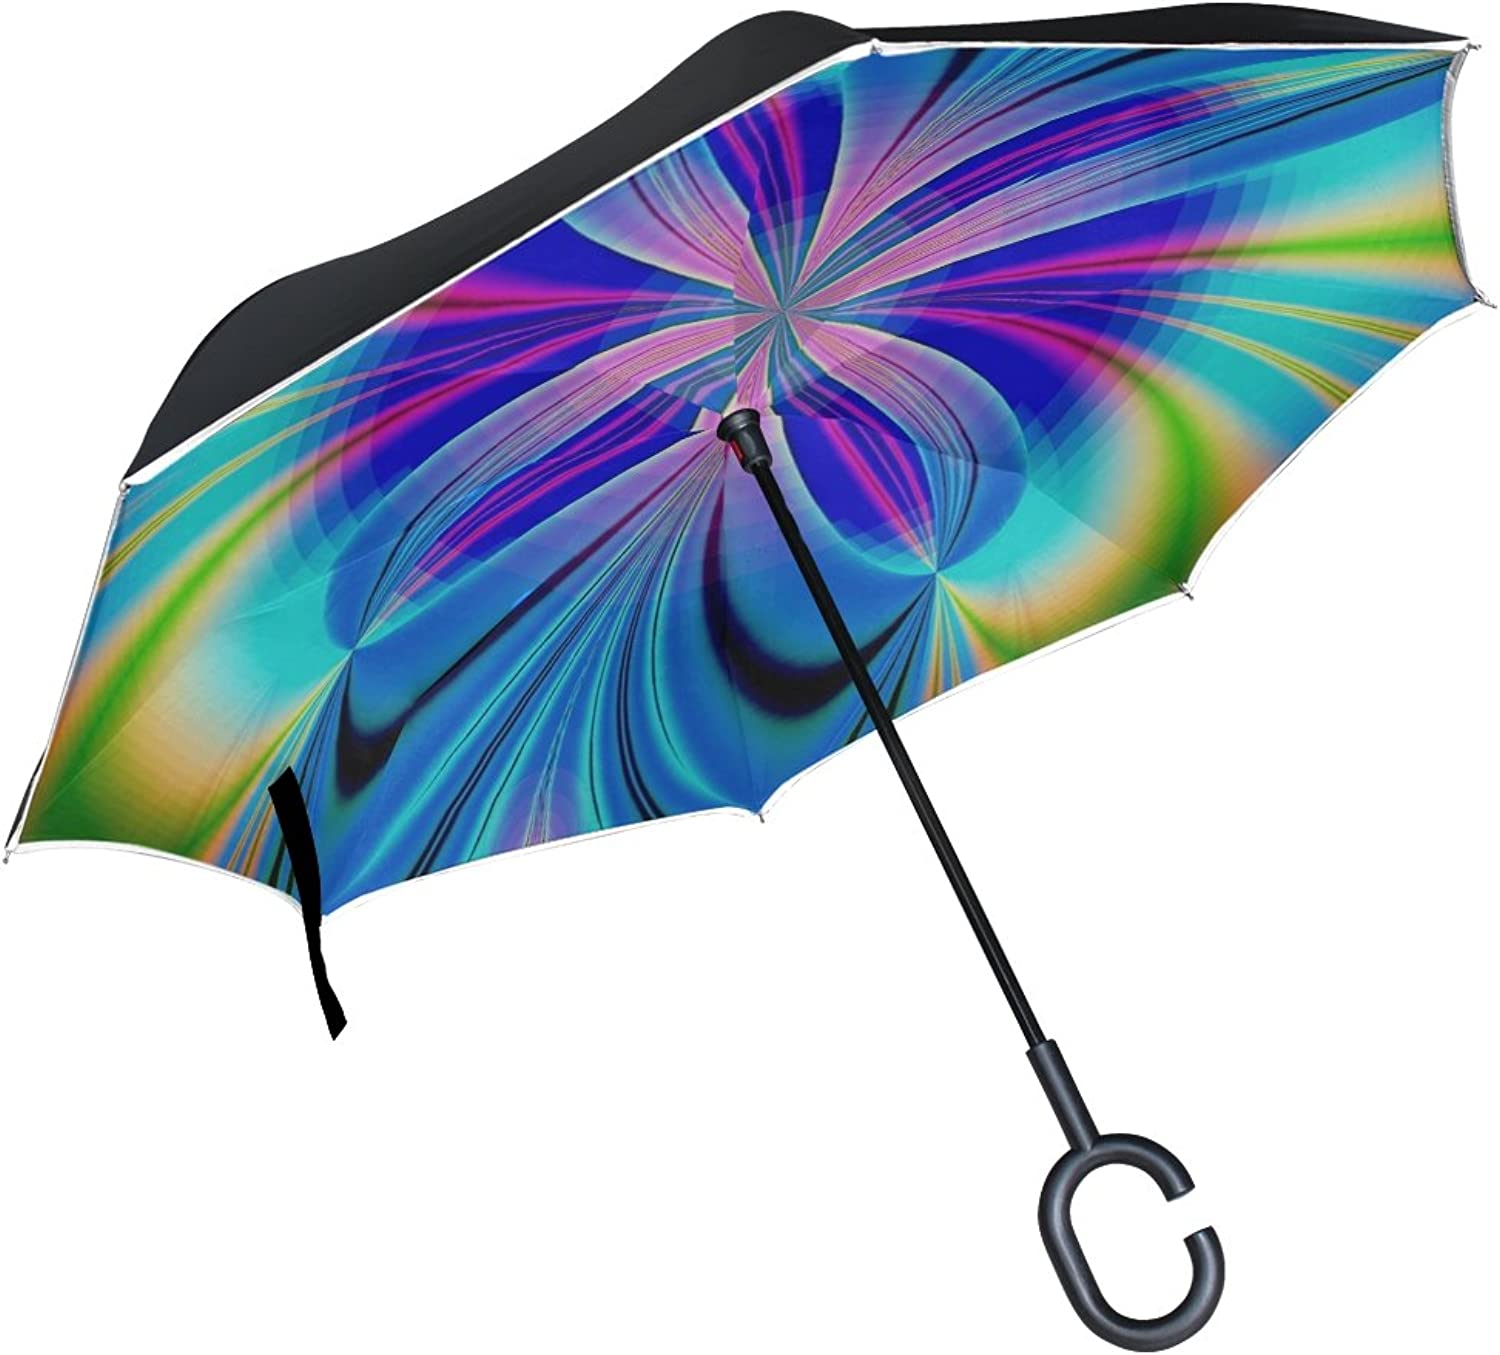 Double Layer Ingreened Abstract Art Design Digital Art Fractals color Umbrellas Reverse Folding Umbrella Windproof Uv Predection Big Straight Umbrella for Car Rain Outdoor with CShaped Handle